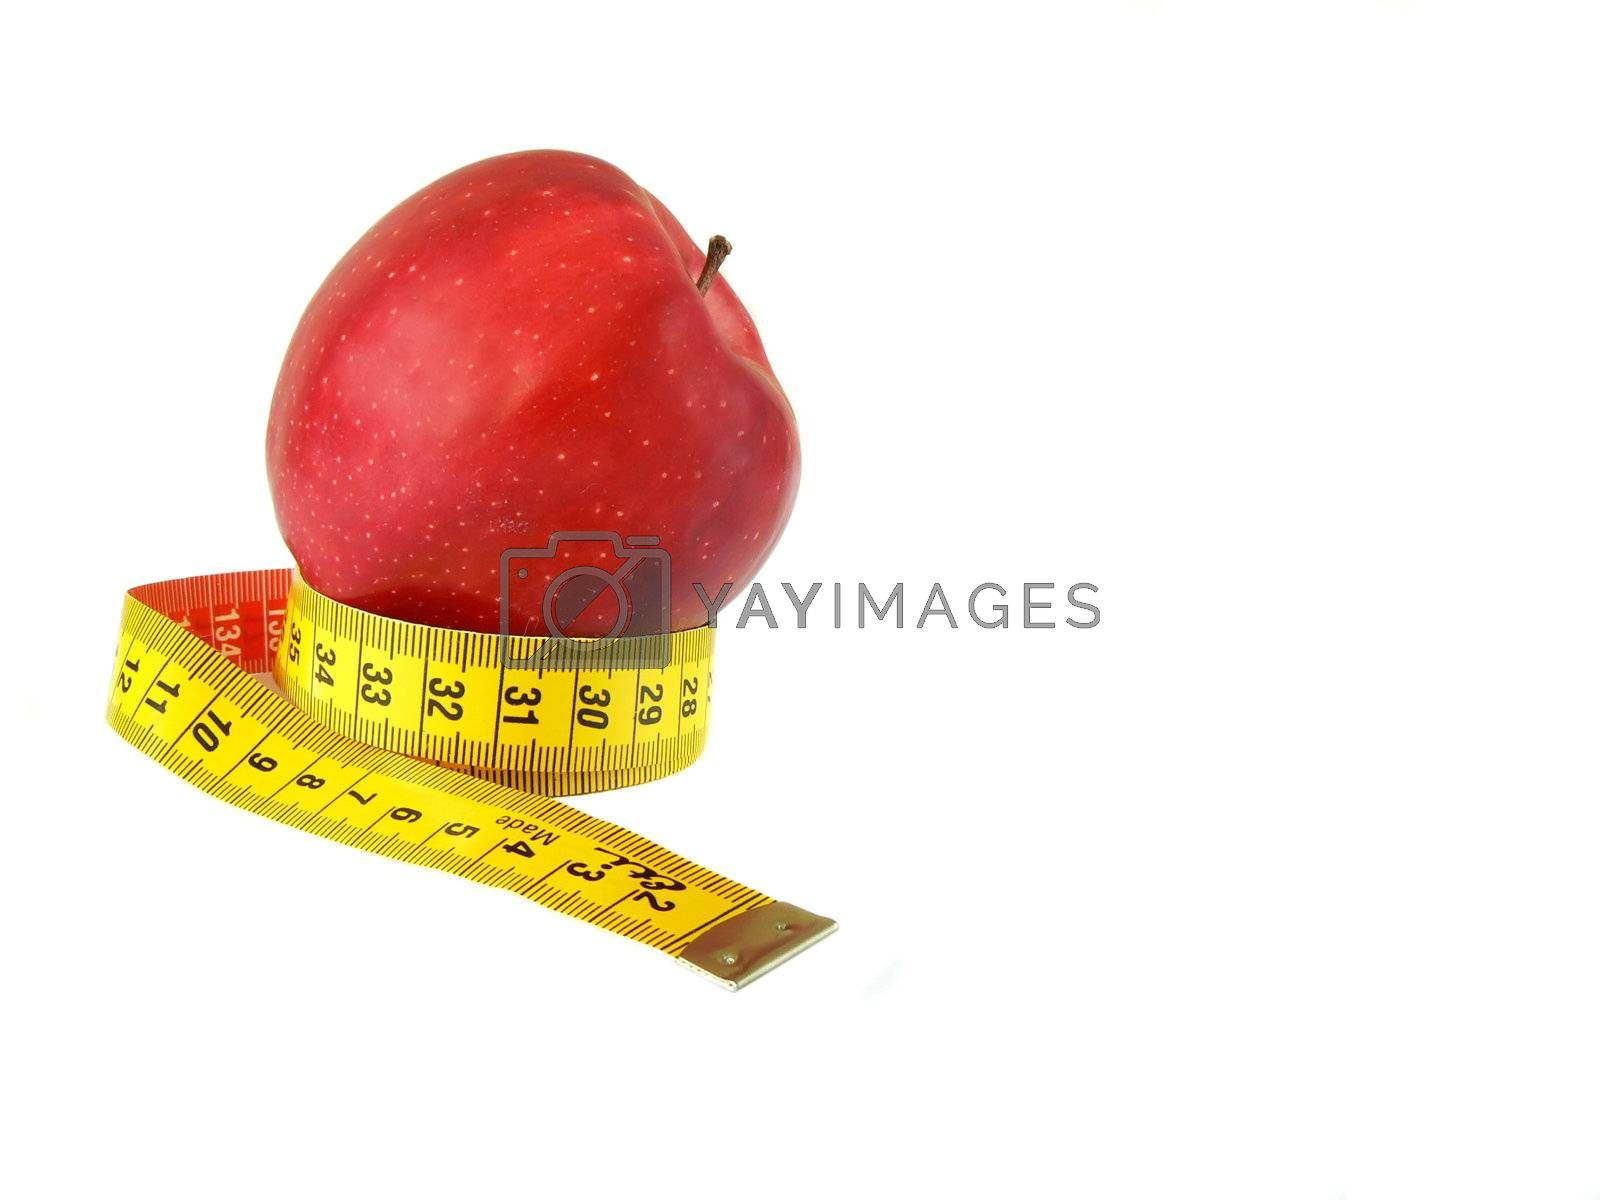 Red apple (malus) and measuring tape isolated on white